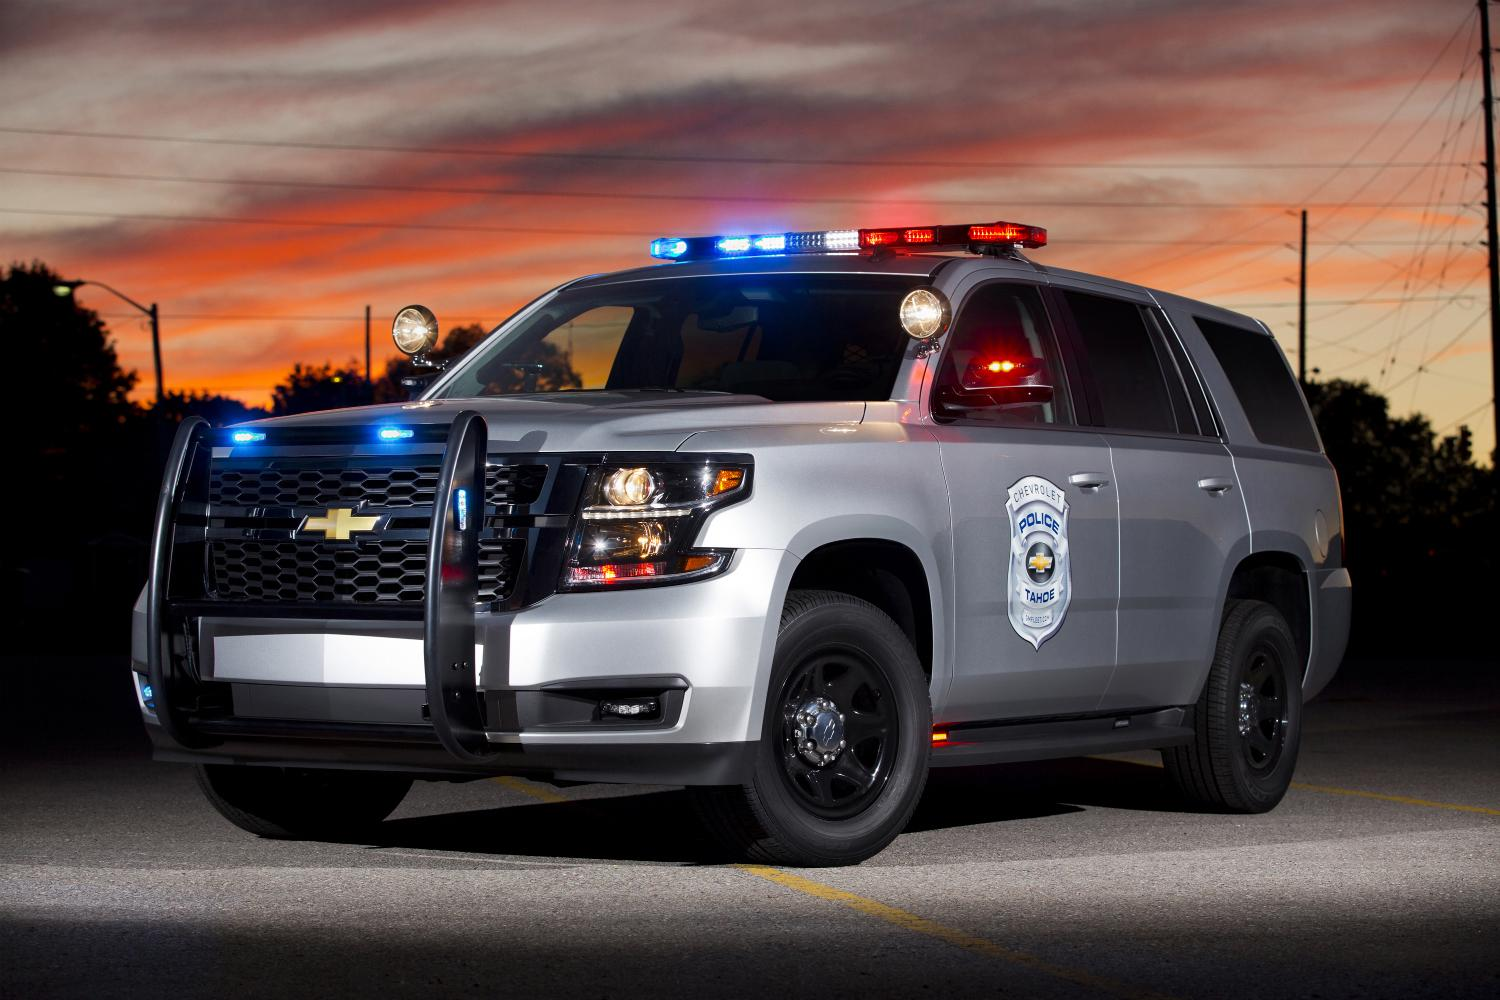 All Chevy chevy 2015 suv : 2015 Unmarked Chevrolet Suburban - Vehicle Models - LCPDFR.com